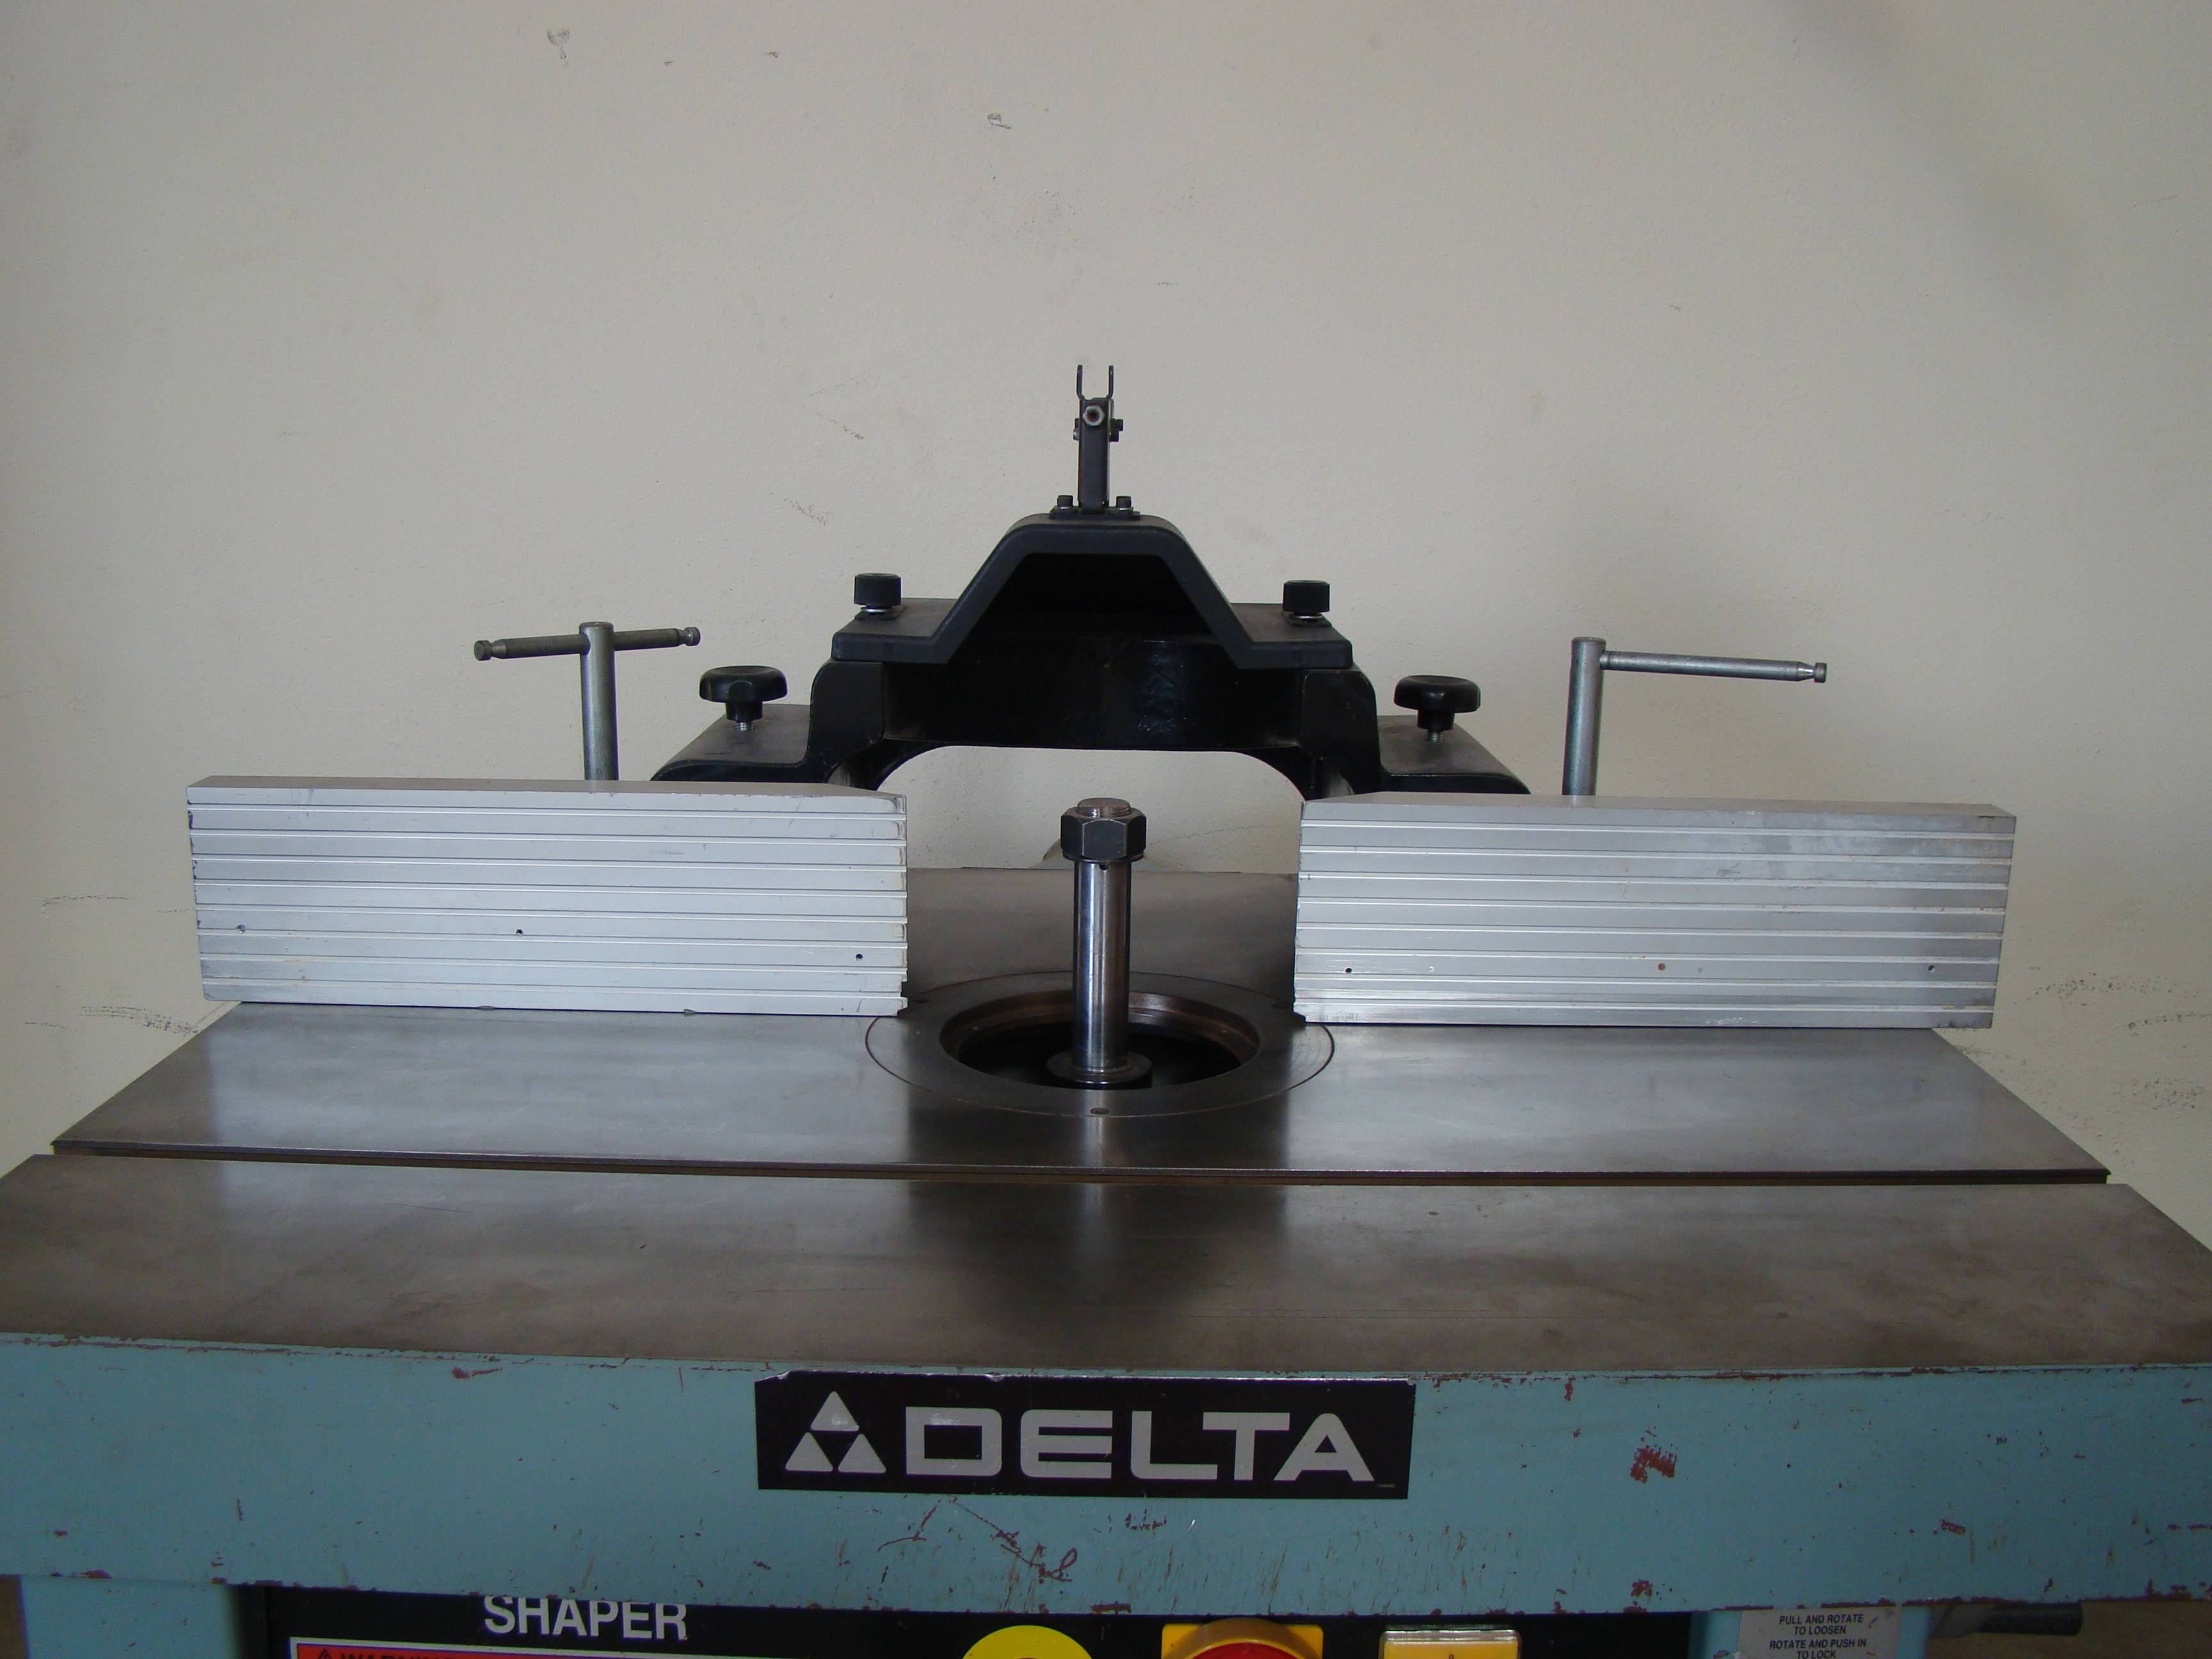 """Delta Wood Shaper 43-791 5 speed 1-1/4"""" Spindle 7.5 HP 200-220/440 Volt 3PH - Image 4 of 6"""